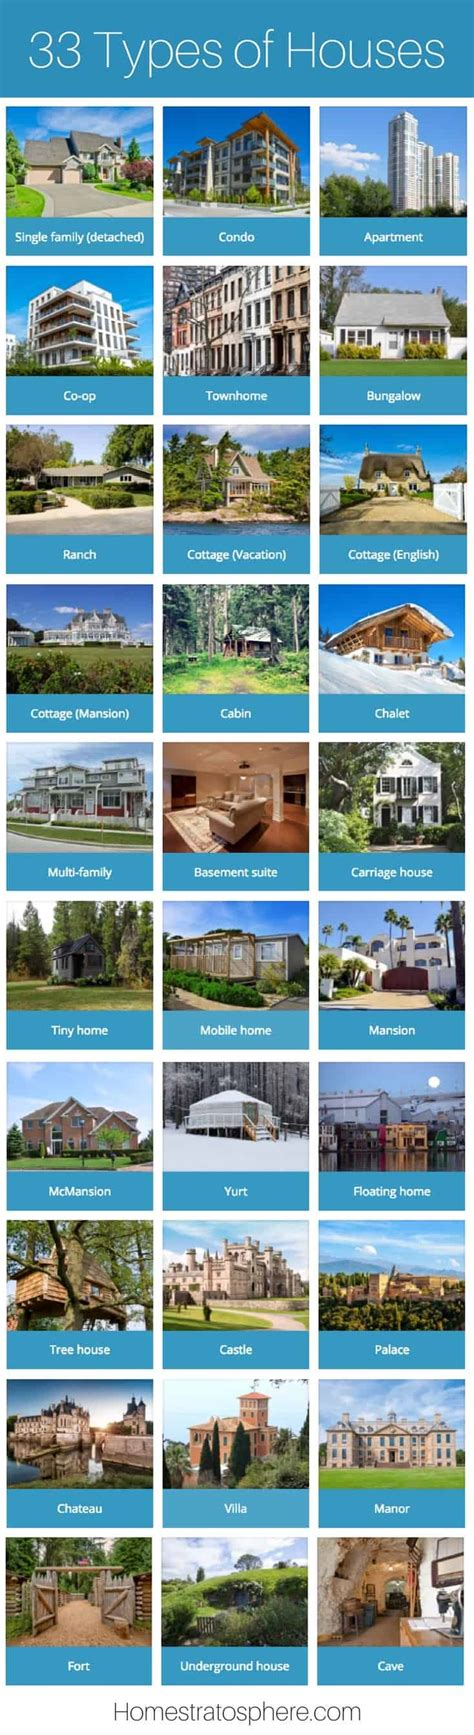 35 Different Types of Houses (with Photos)